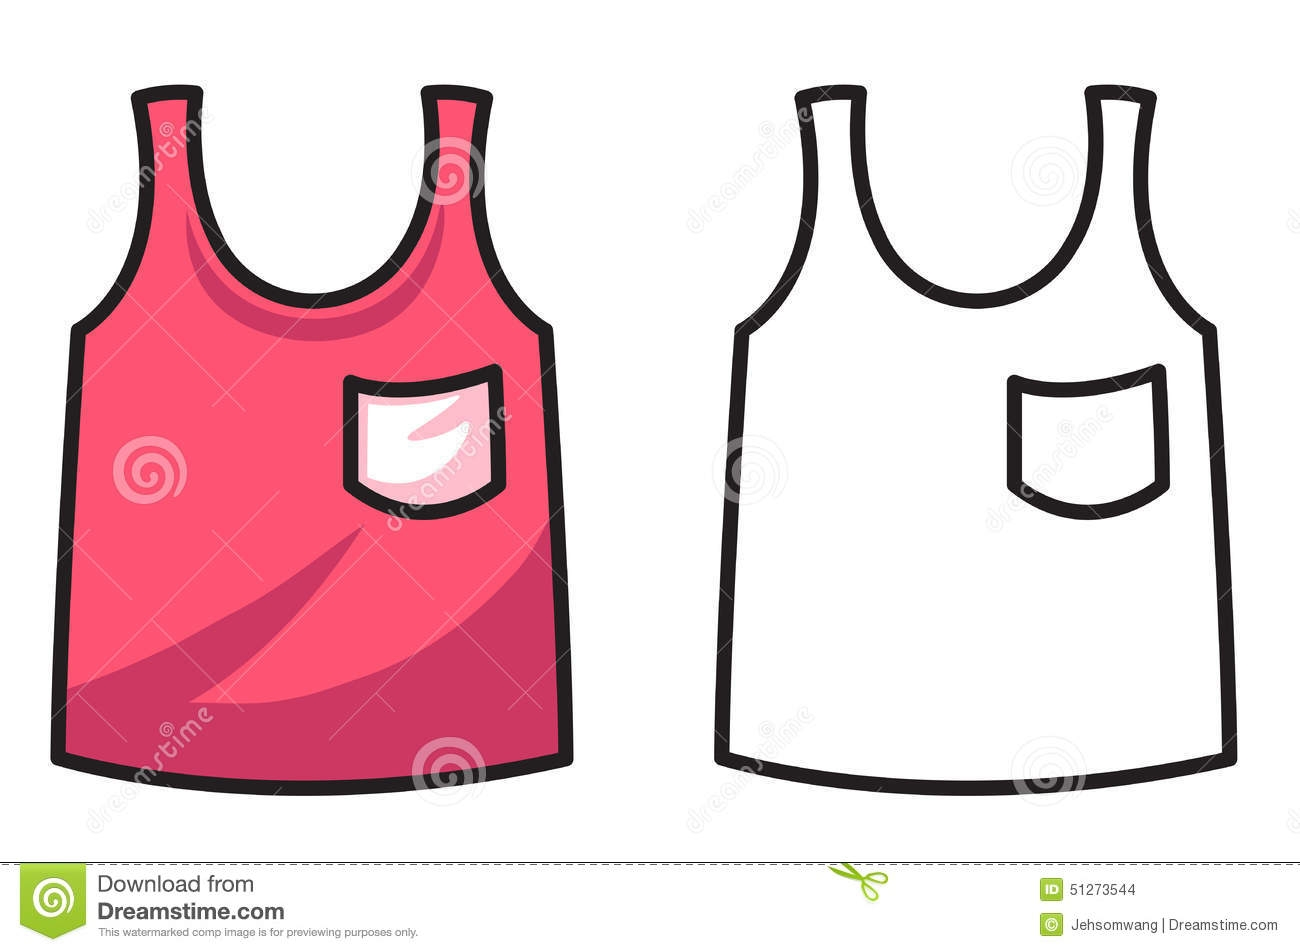 Awesome gallery digital collection. Vest clipart